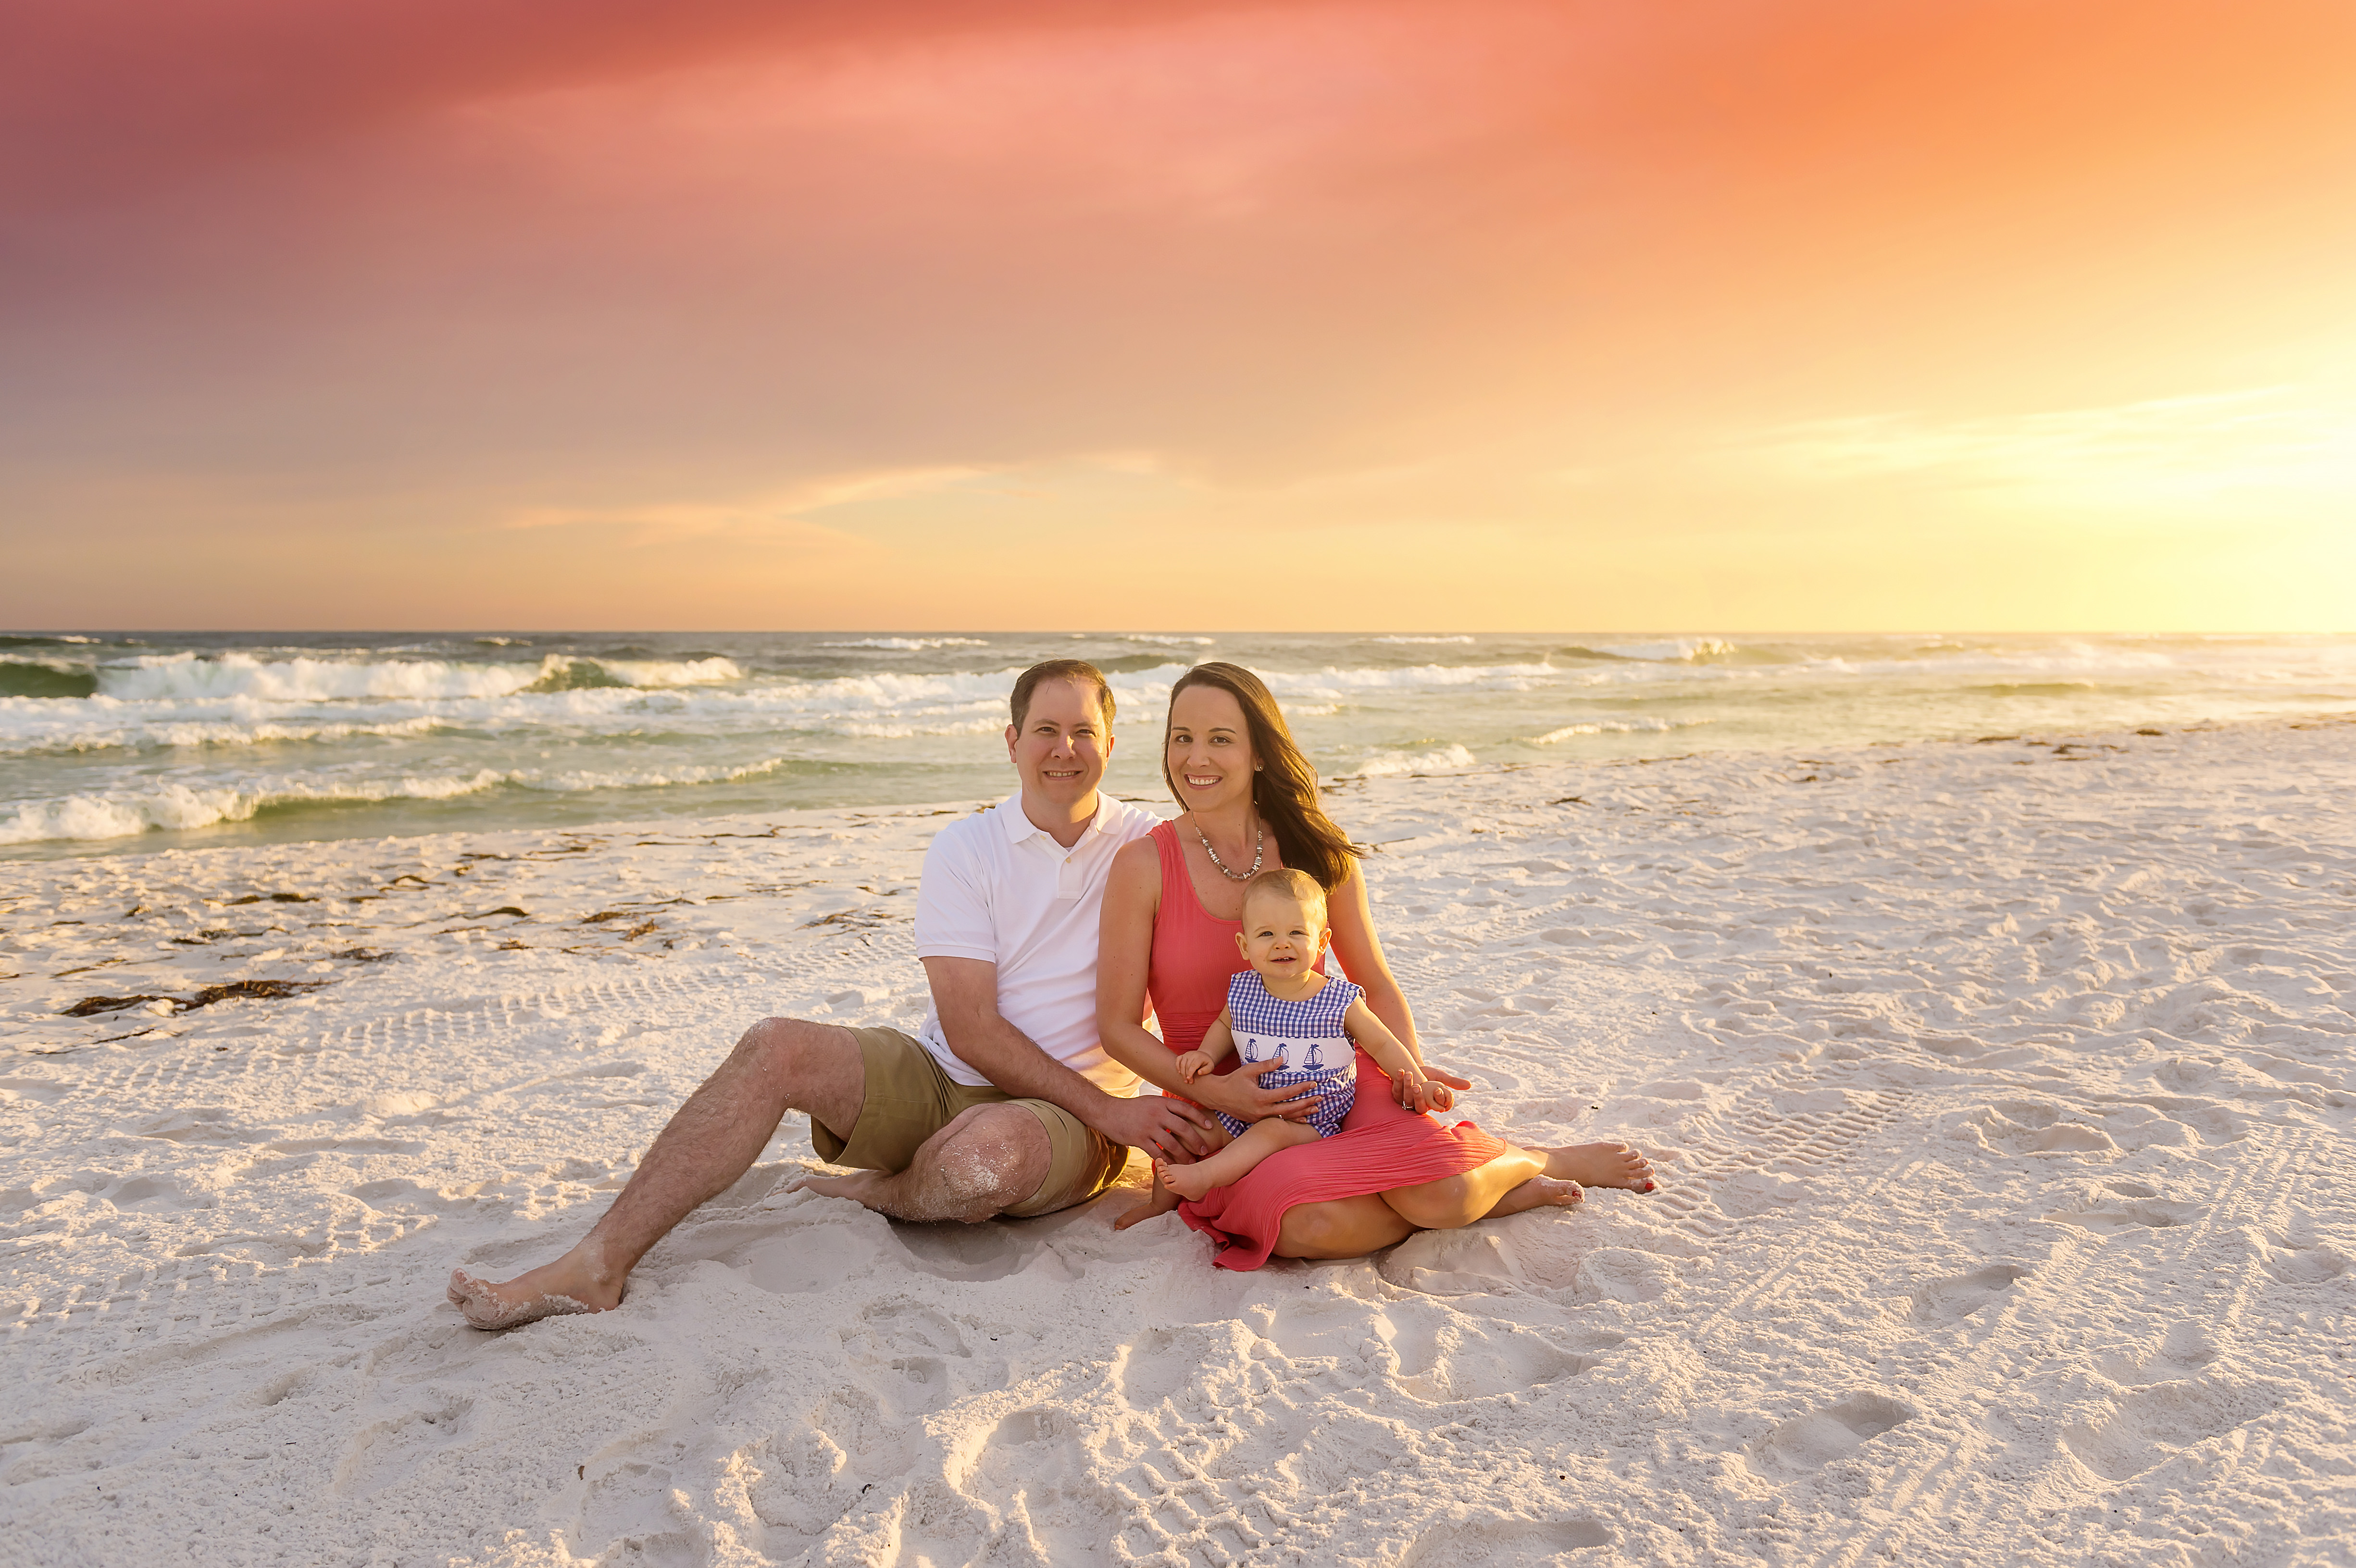 Destin_Florida_Beach_Photographer_0103